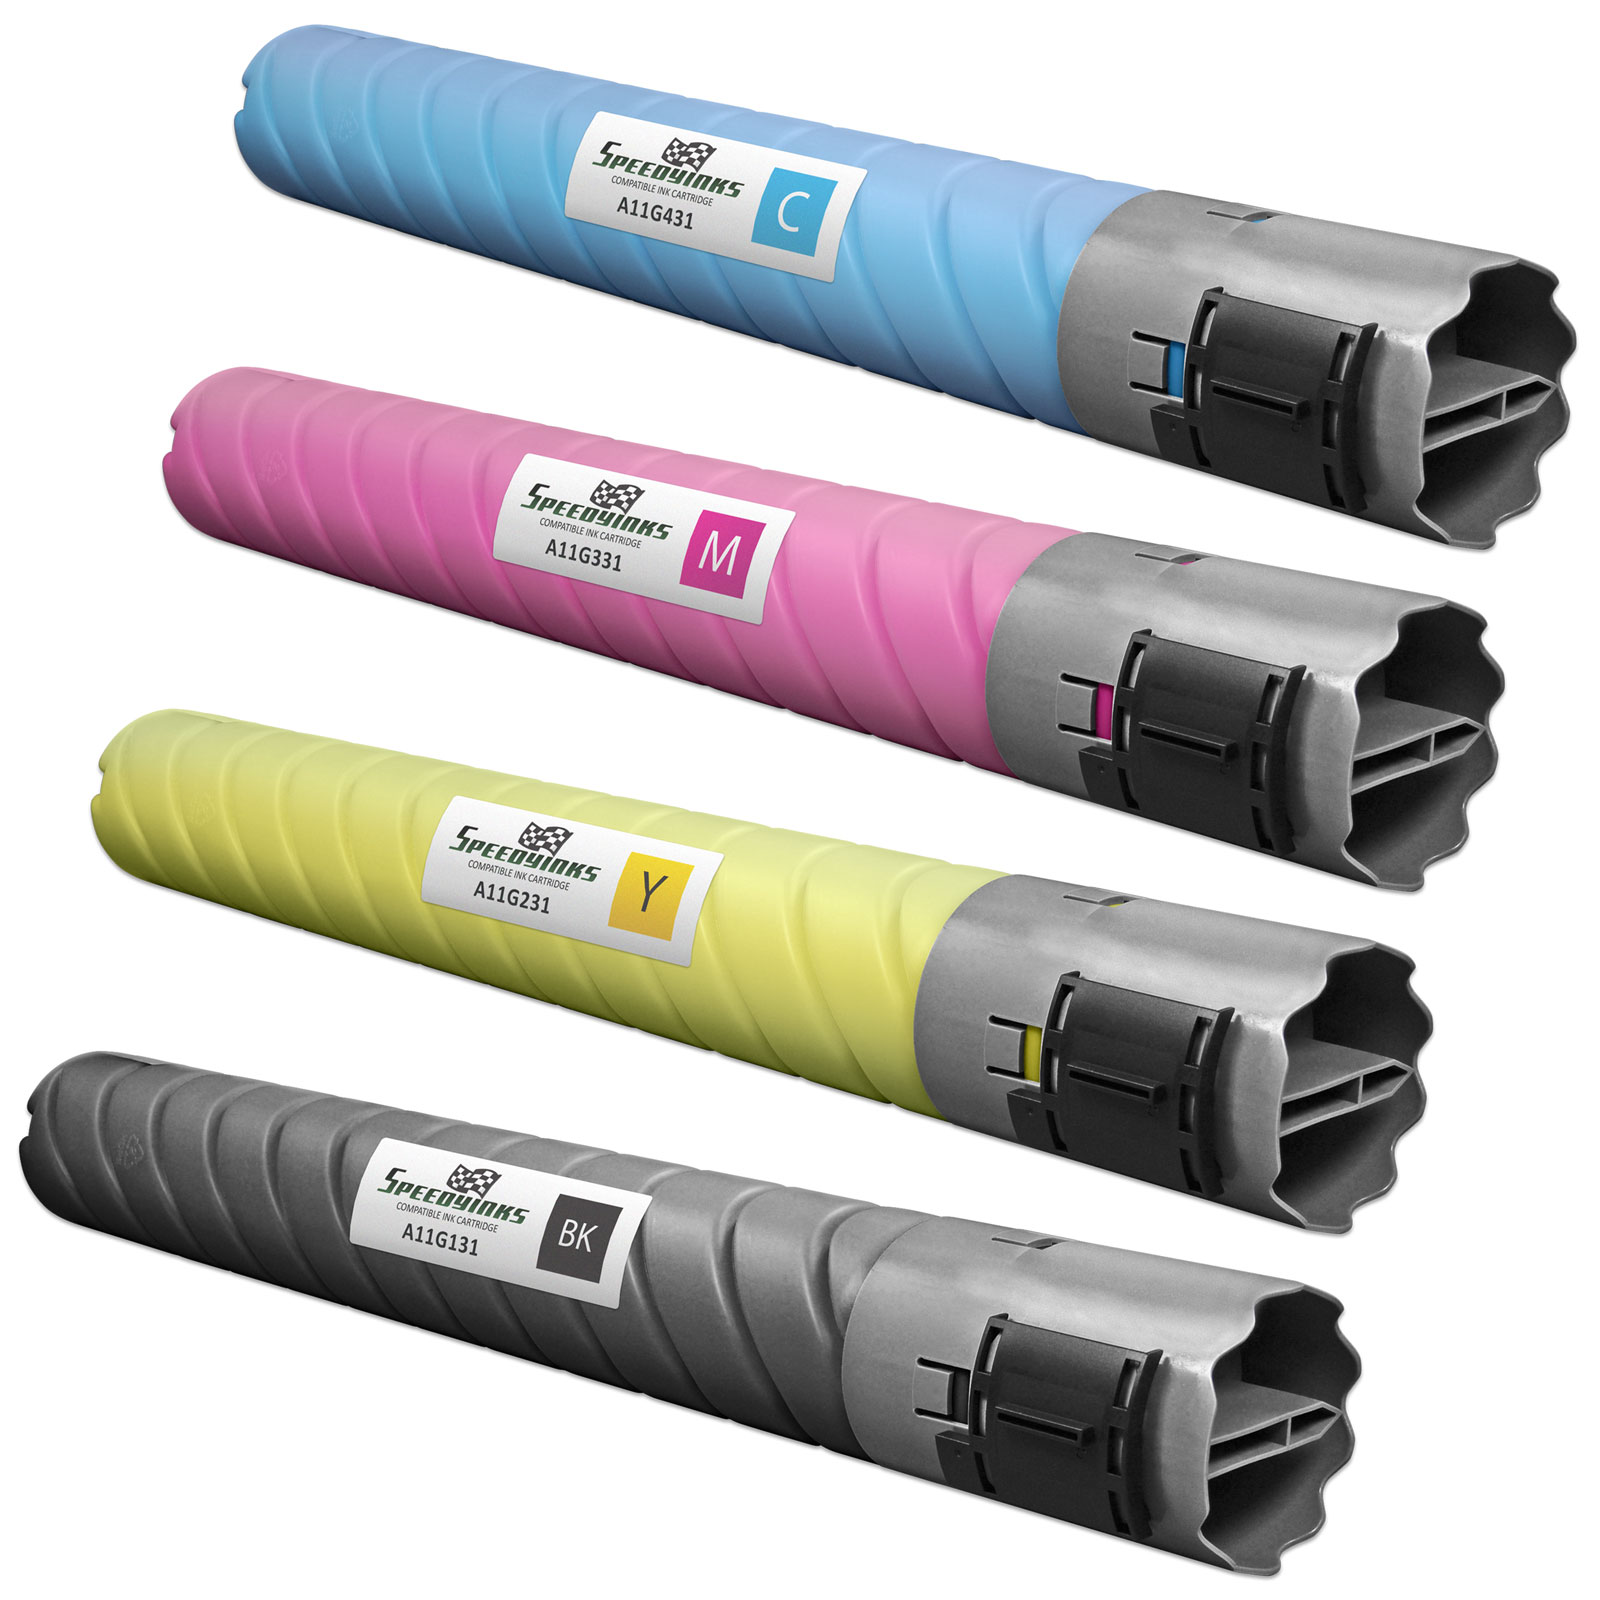 SpeedyInks - 4pk Compatible Konica Minolta TN216 Toner Cartridge Set Black TN216K, A11G131, Cyan TN216C, A11G231, Magenta TN216M, A11G331, Yellow TN216Y, A11G431 for BizHub for C220 C280 C360